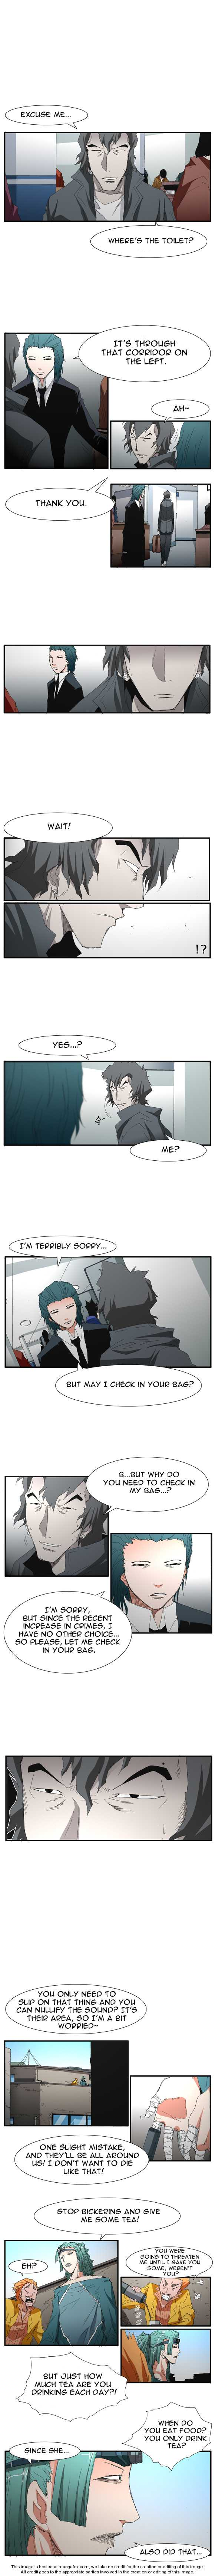 Trace 18 Page 2